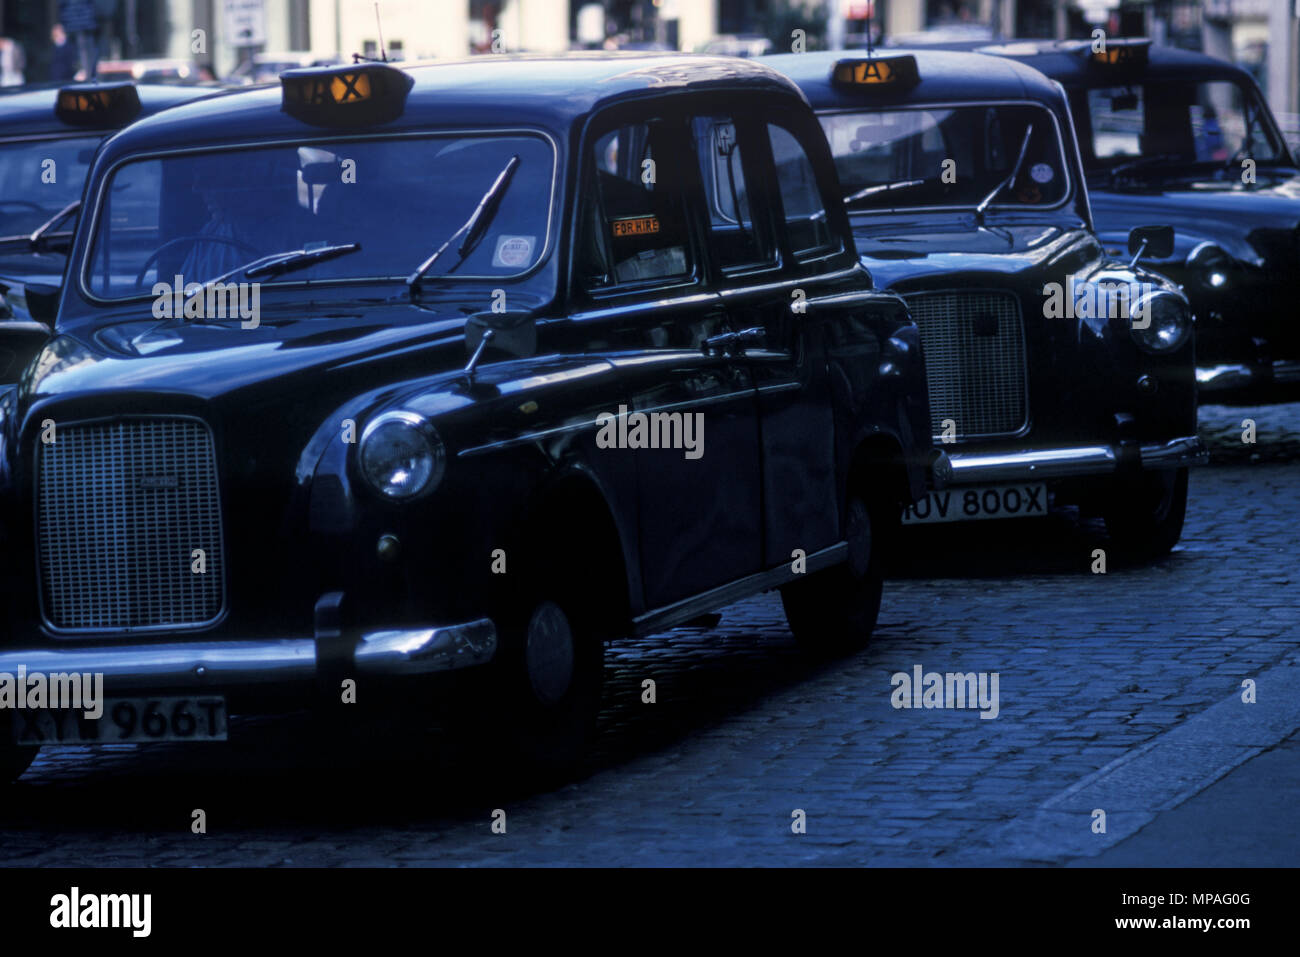 1988 HISTORICAL LINE OF BLACK TAXI CABS FOR HIRE VICTORIA STATION TAXI RANK LONDON ENGLAND UK Stock Photo